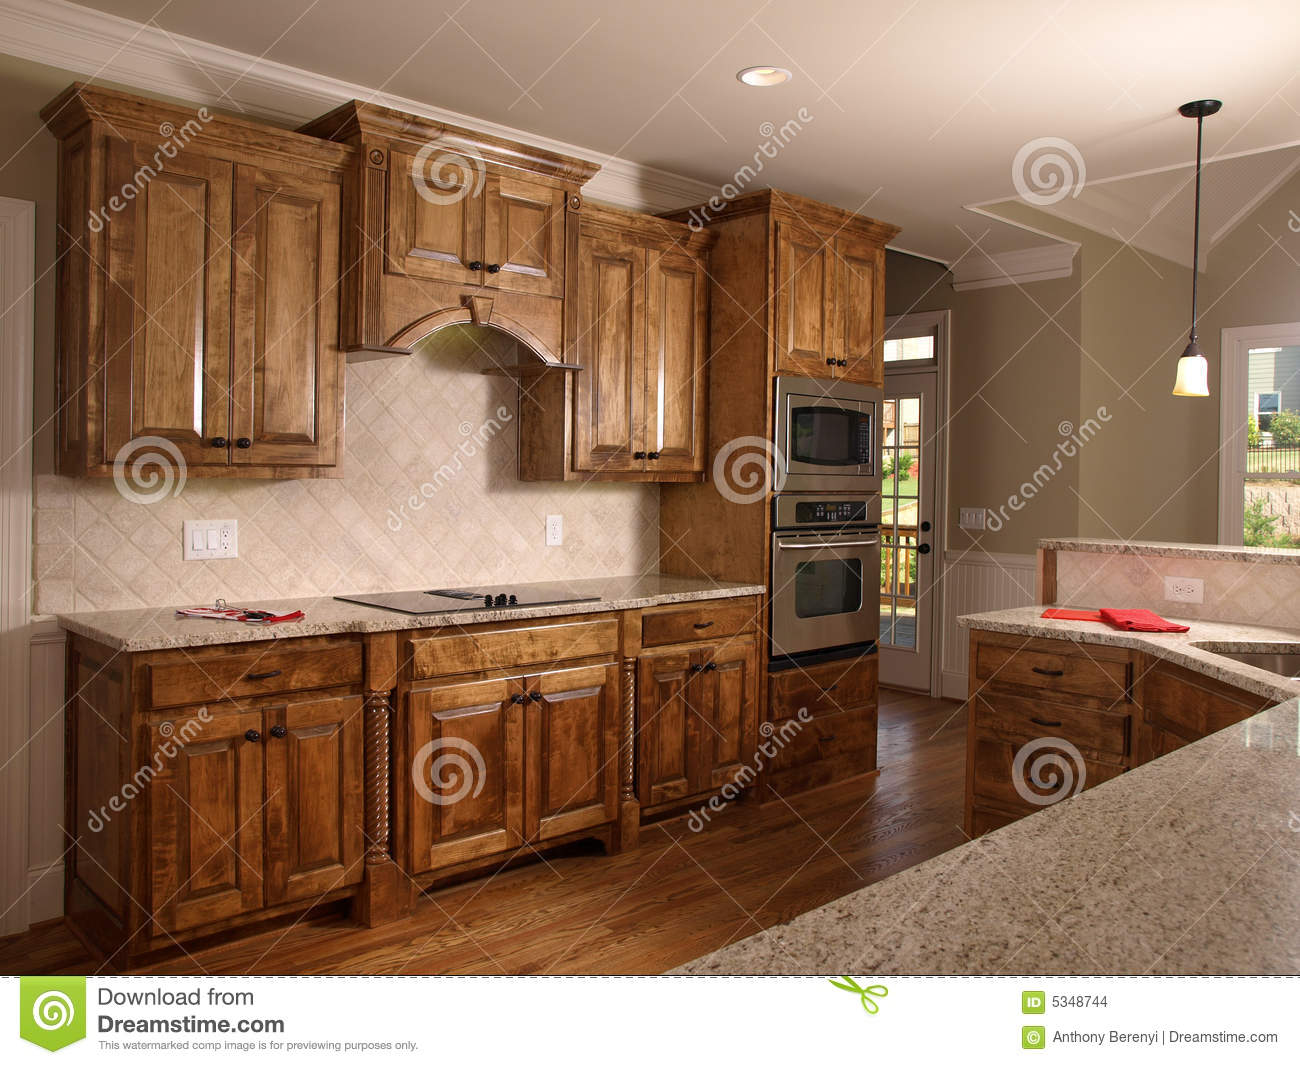 Luxury Model Home Maple Kitchen 2 Stock Images - Image: 5348744